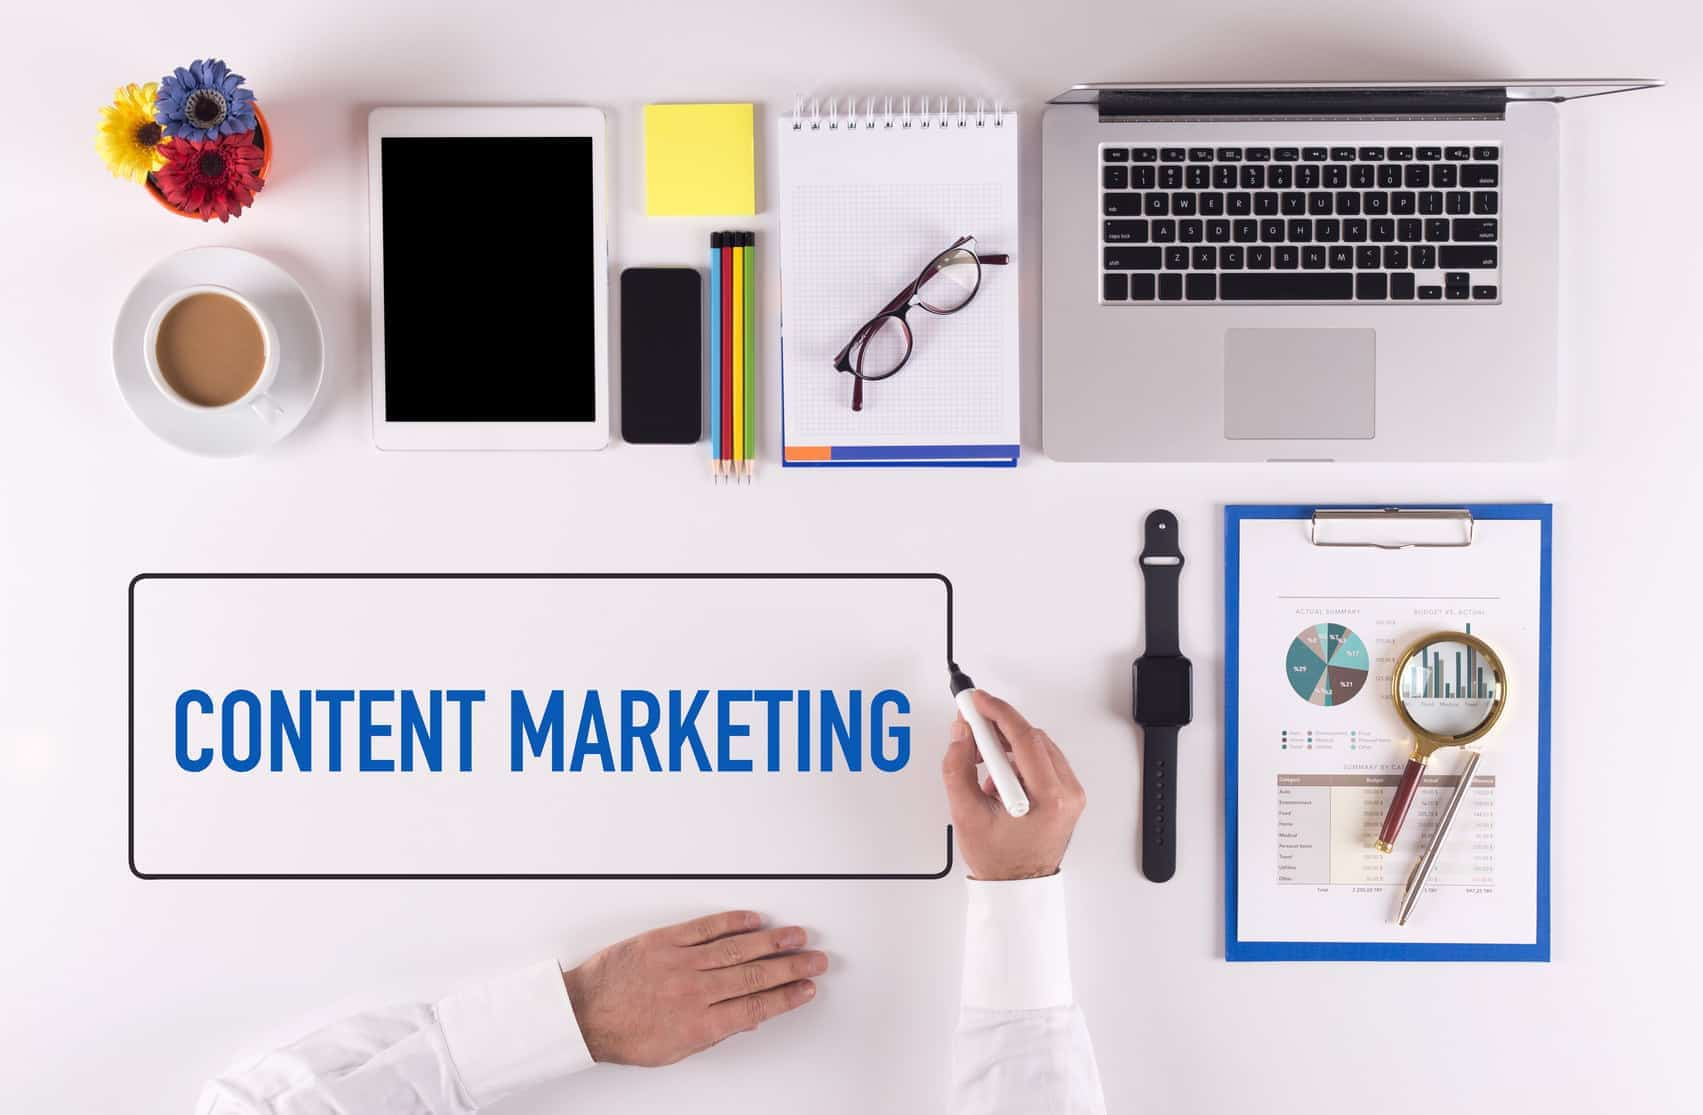 Content marketing - 7 tips for SEO writing.